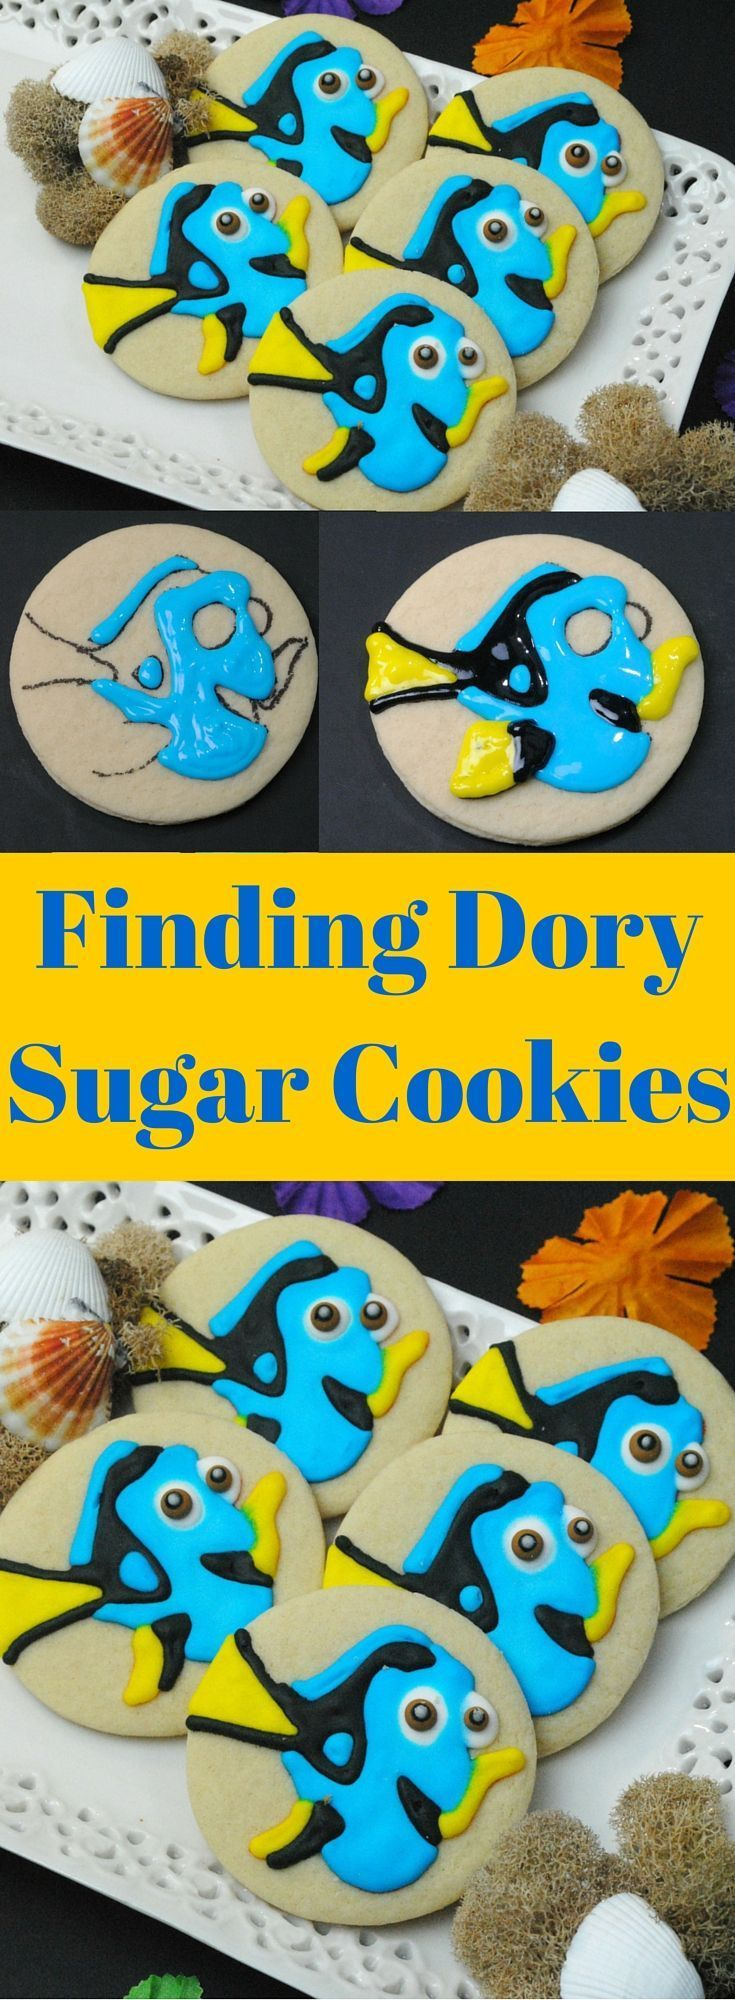 493 best Cookies images on Pinterest